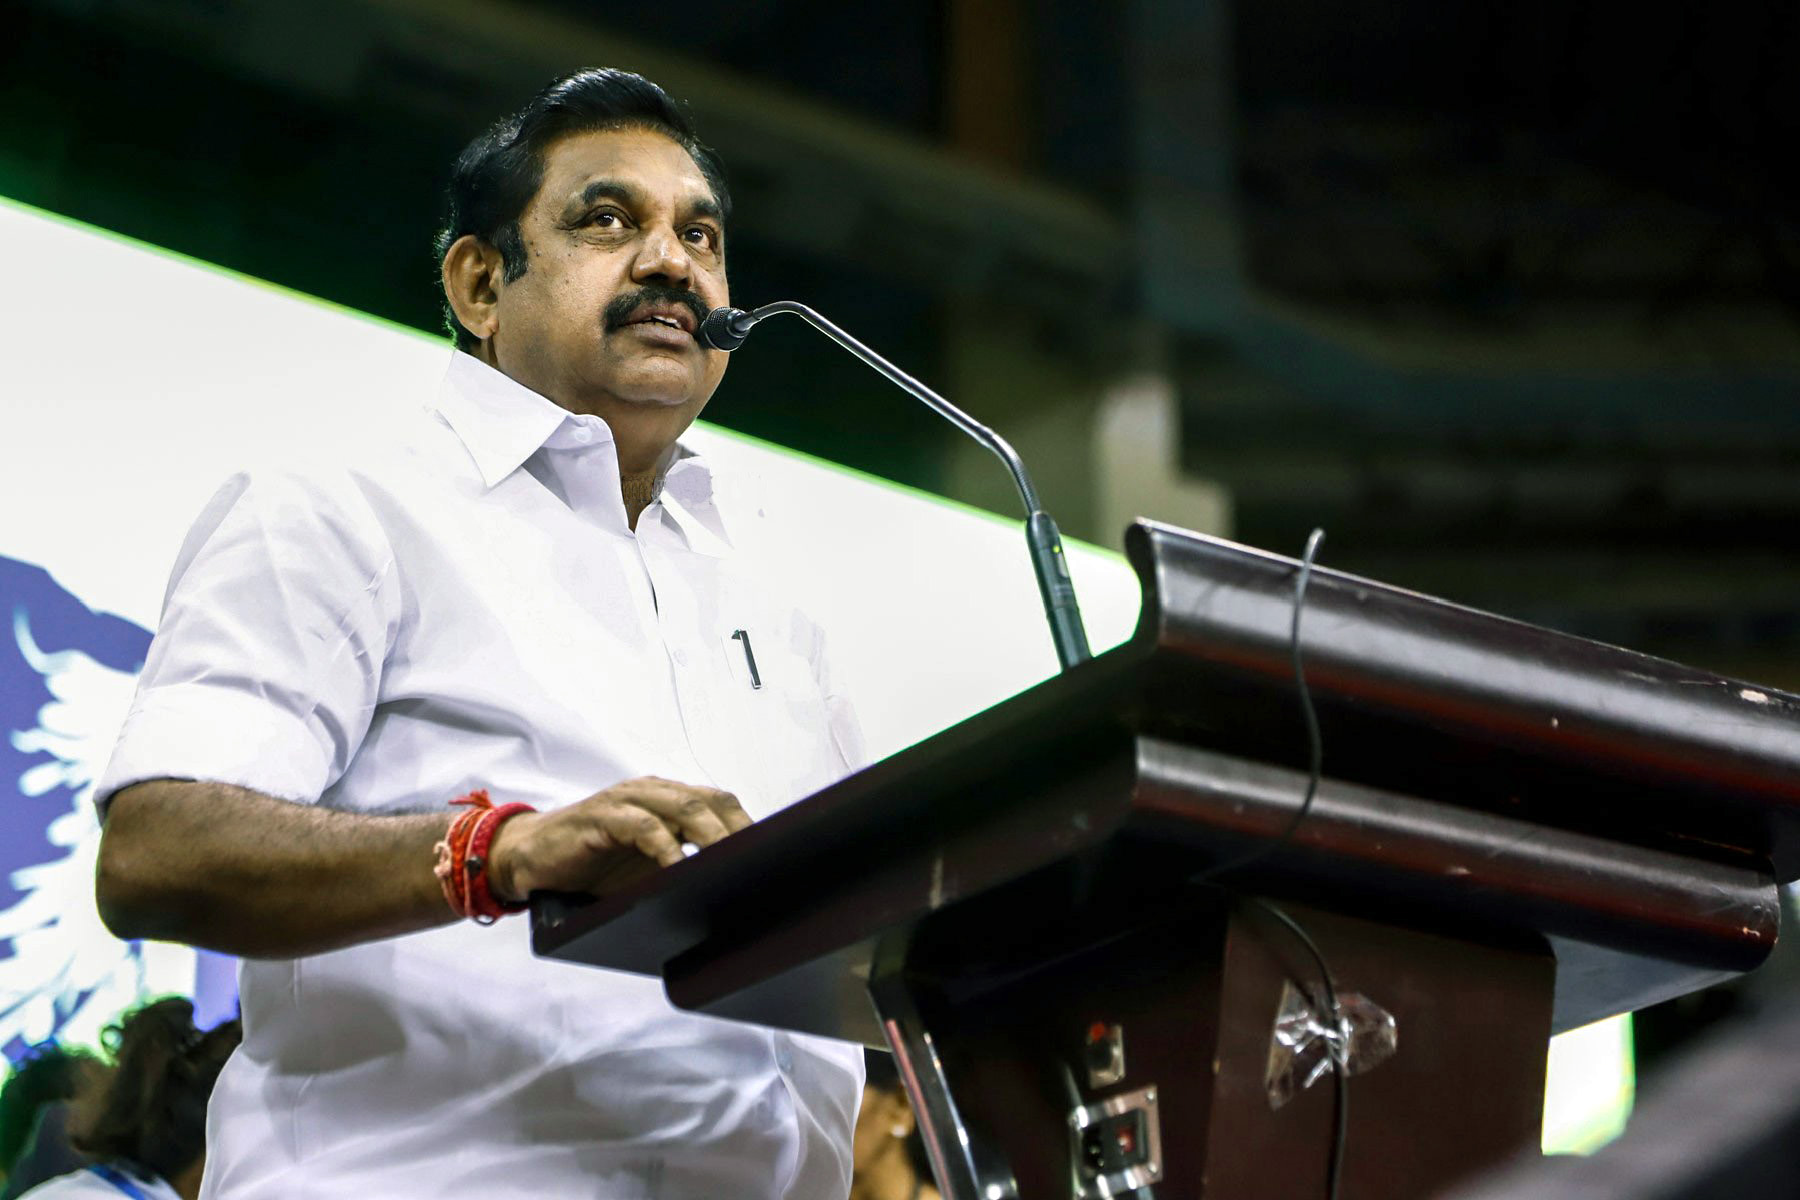 Tamil Nadu CM Palaniswami says Covid-19 vaccine will be provided to everyone free of cost